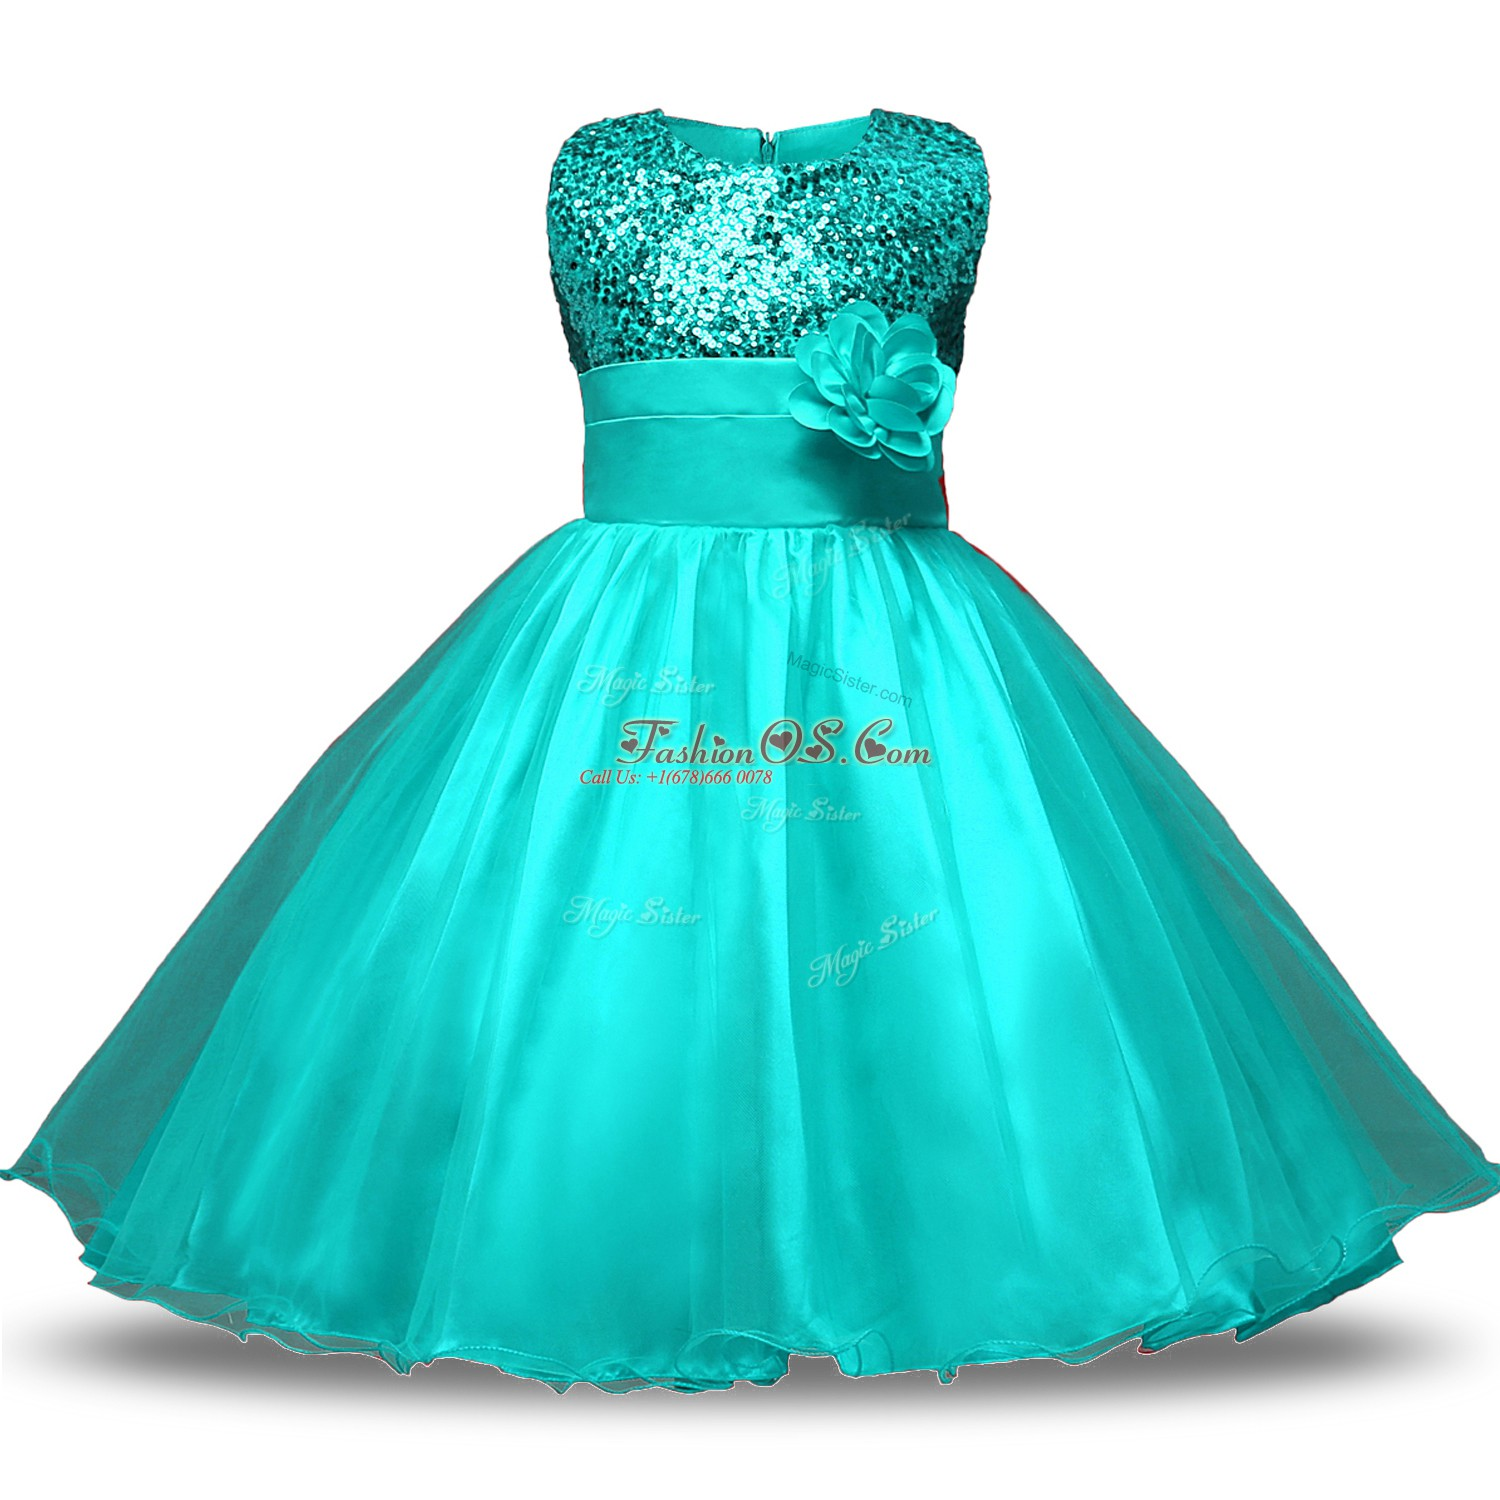 Knee Length Turquoise Toddler Flower Girl Dress Scoop Sleeveless Zipper